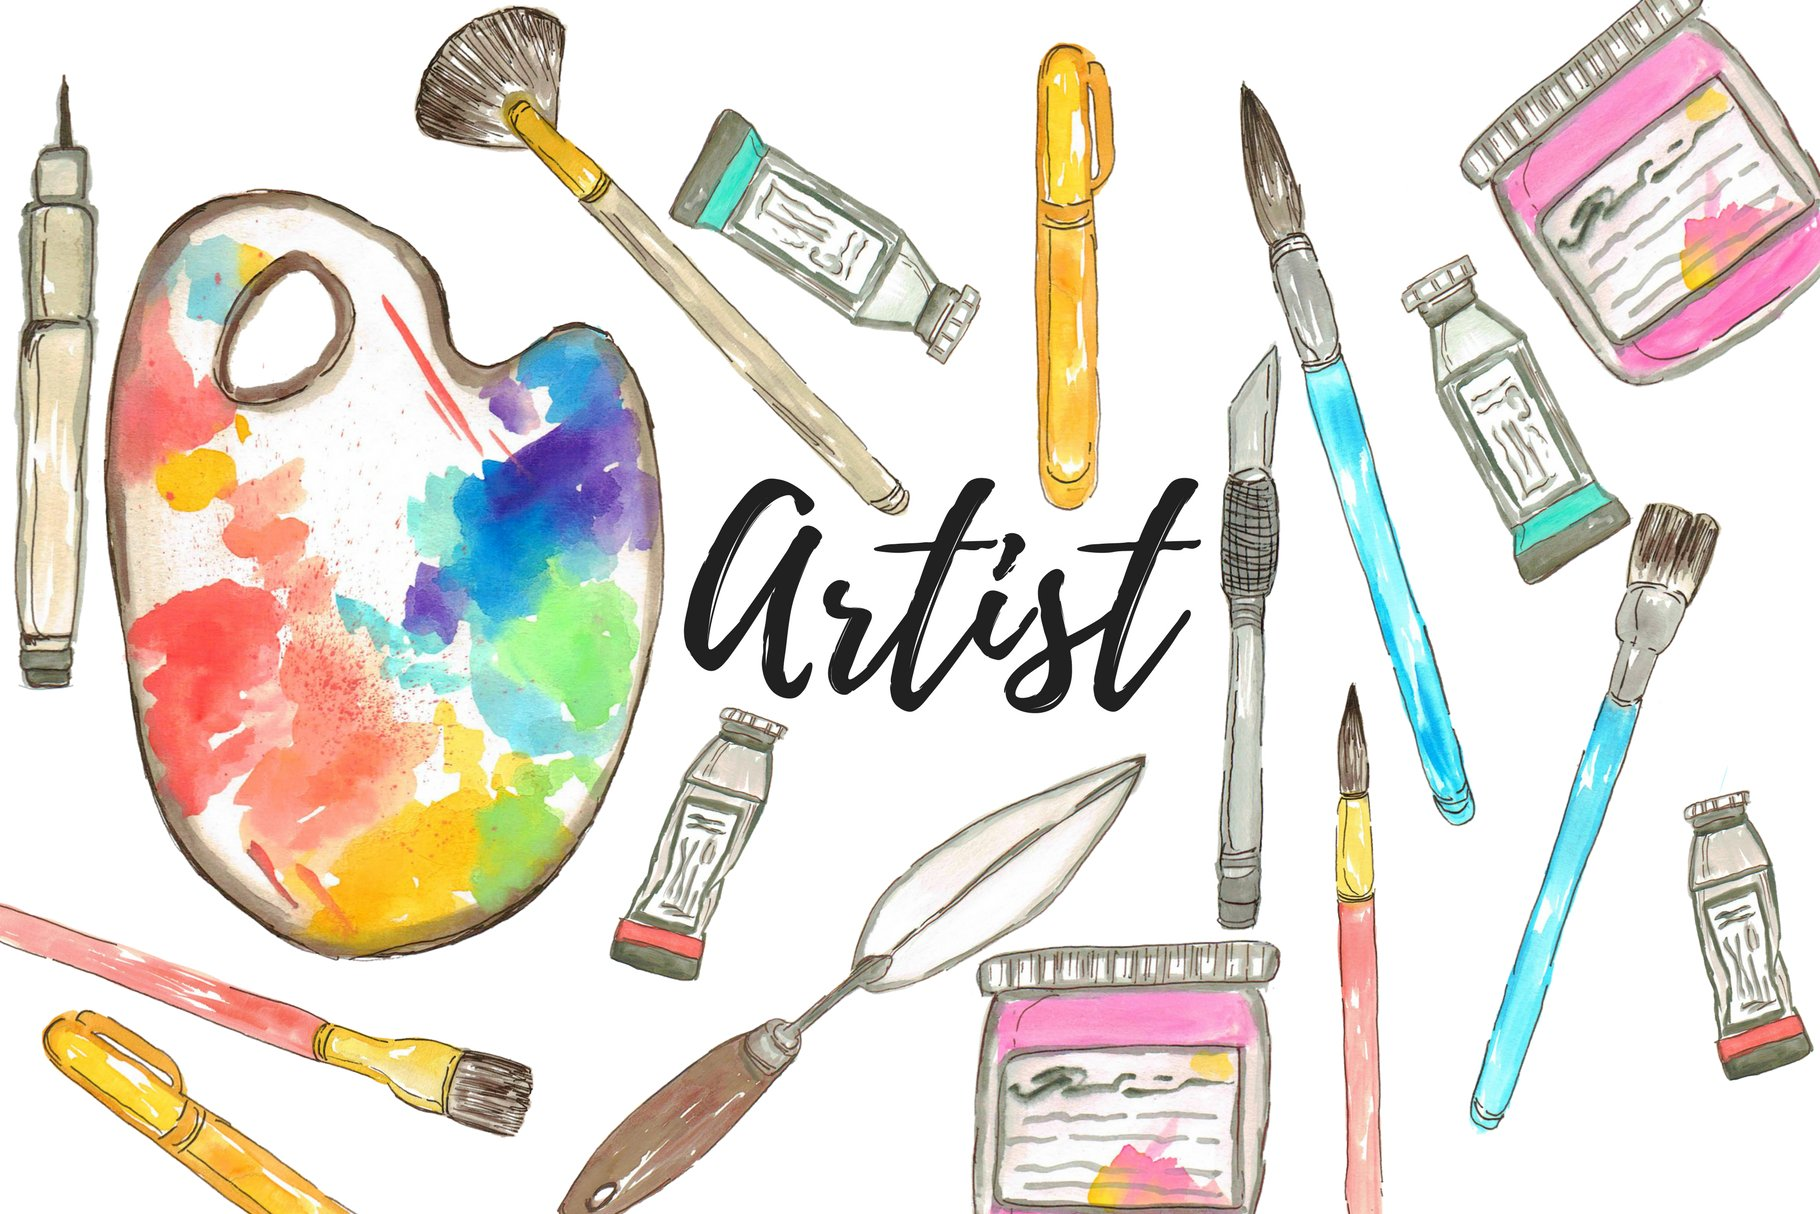 Artistyt clipart image royalty free download Watercolor Artist Clipart image royalty free download